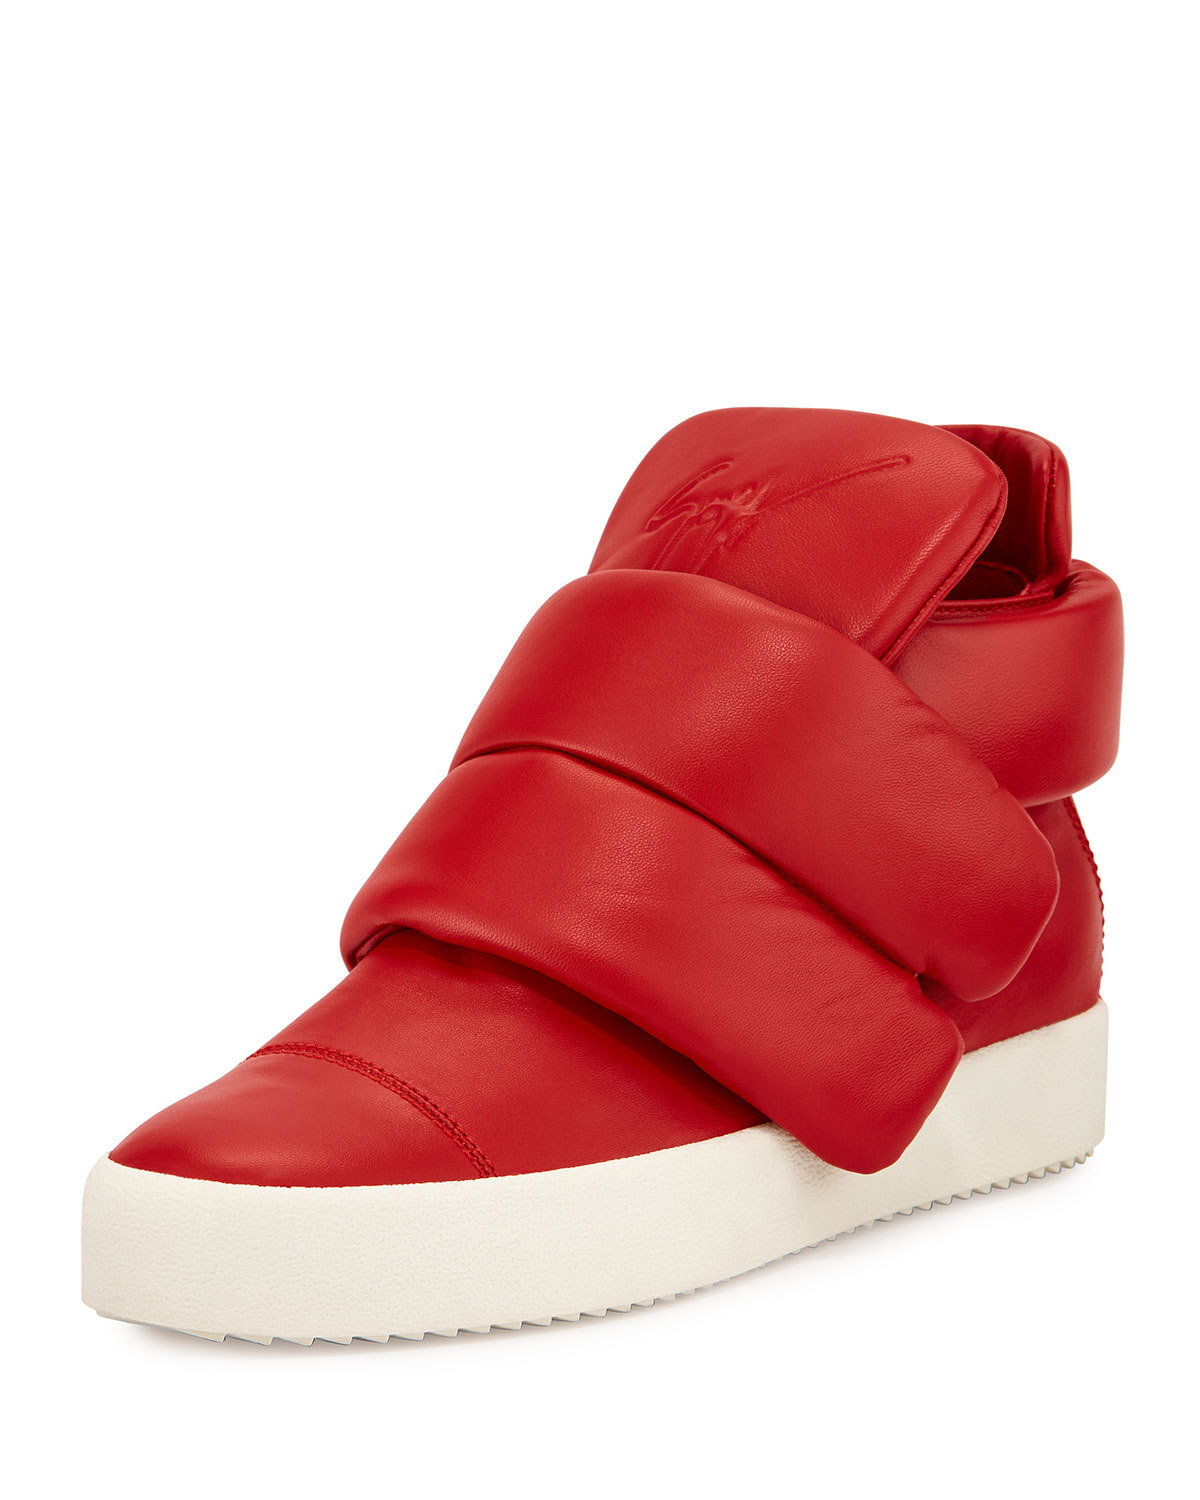 6b4aa575a04 Lyst - Giuseppe Zanotti Cesar Leather High-Top Sneakers in Red for Men